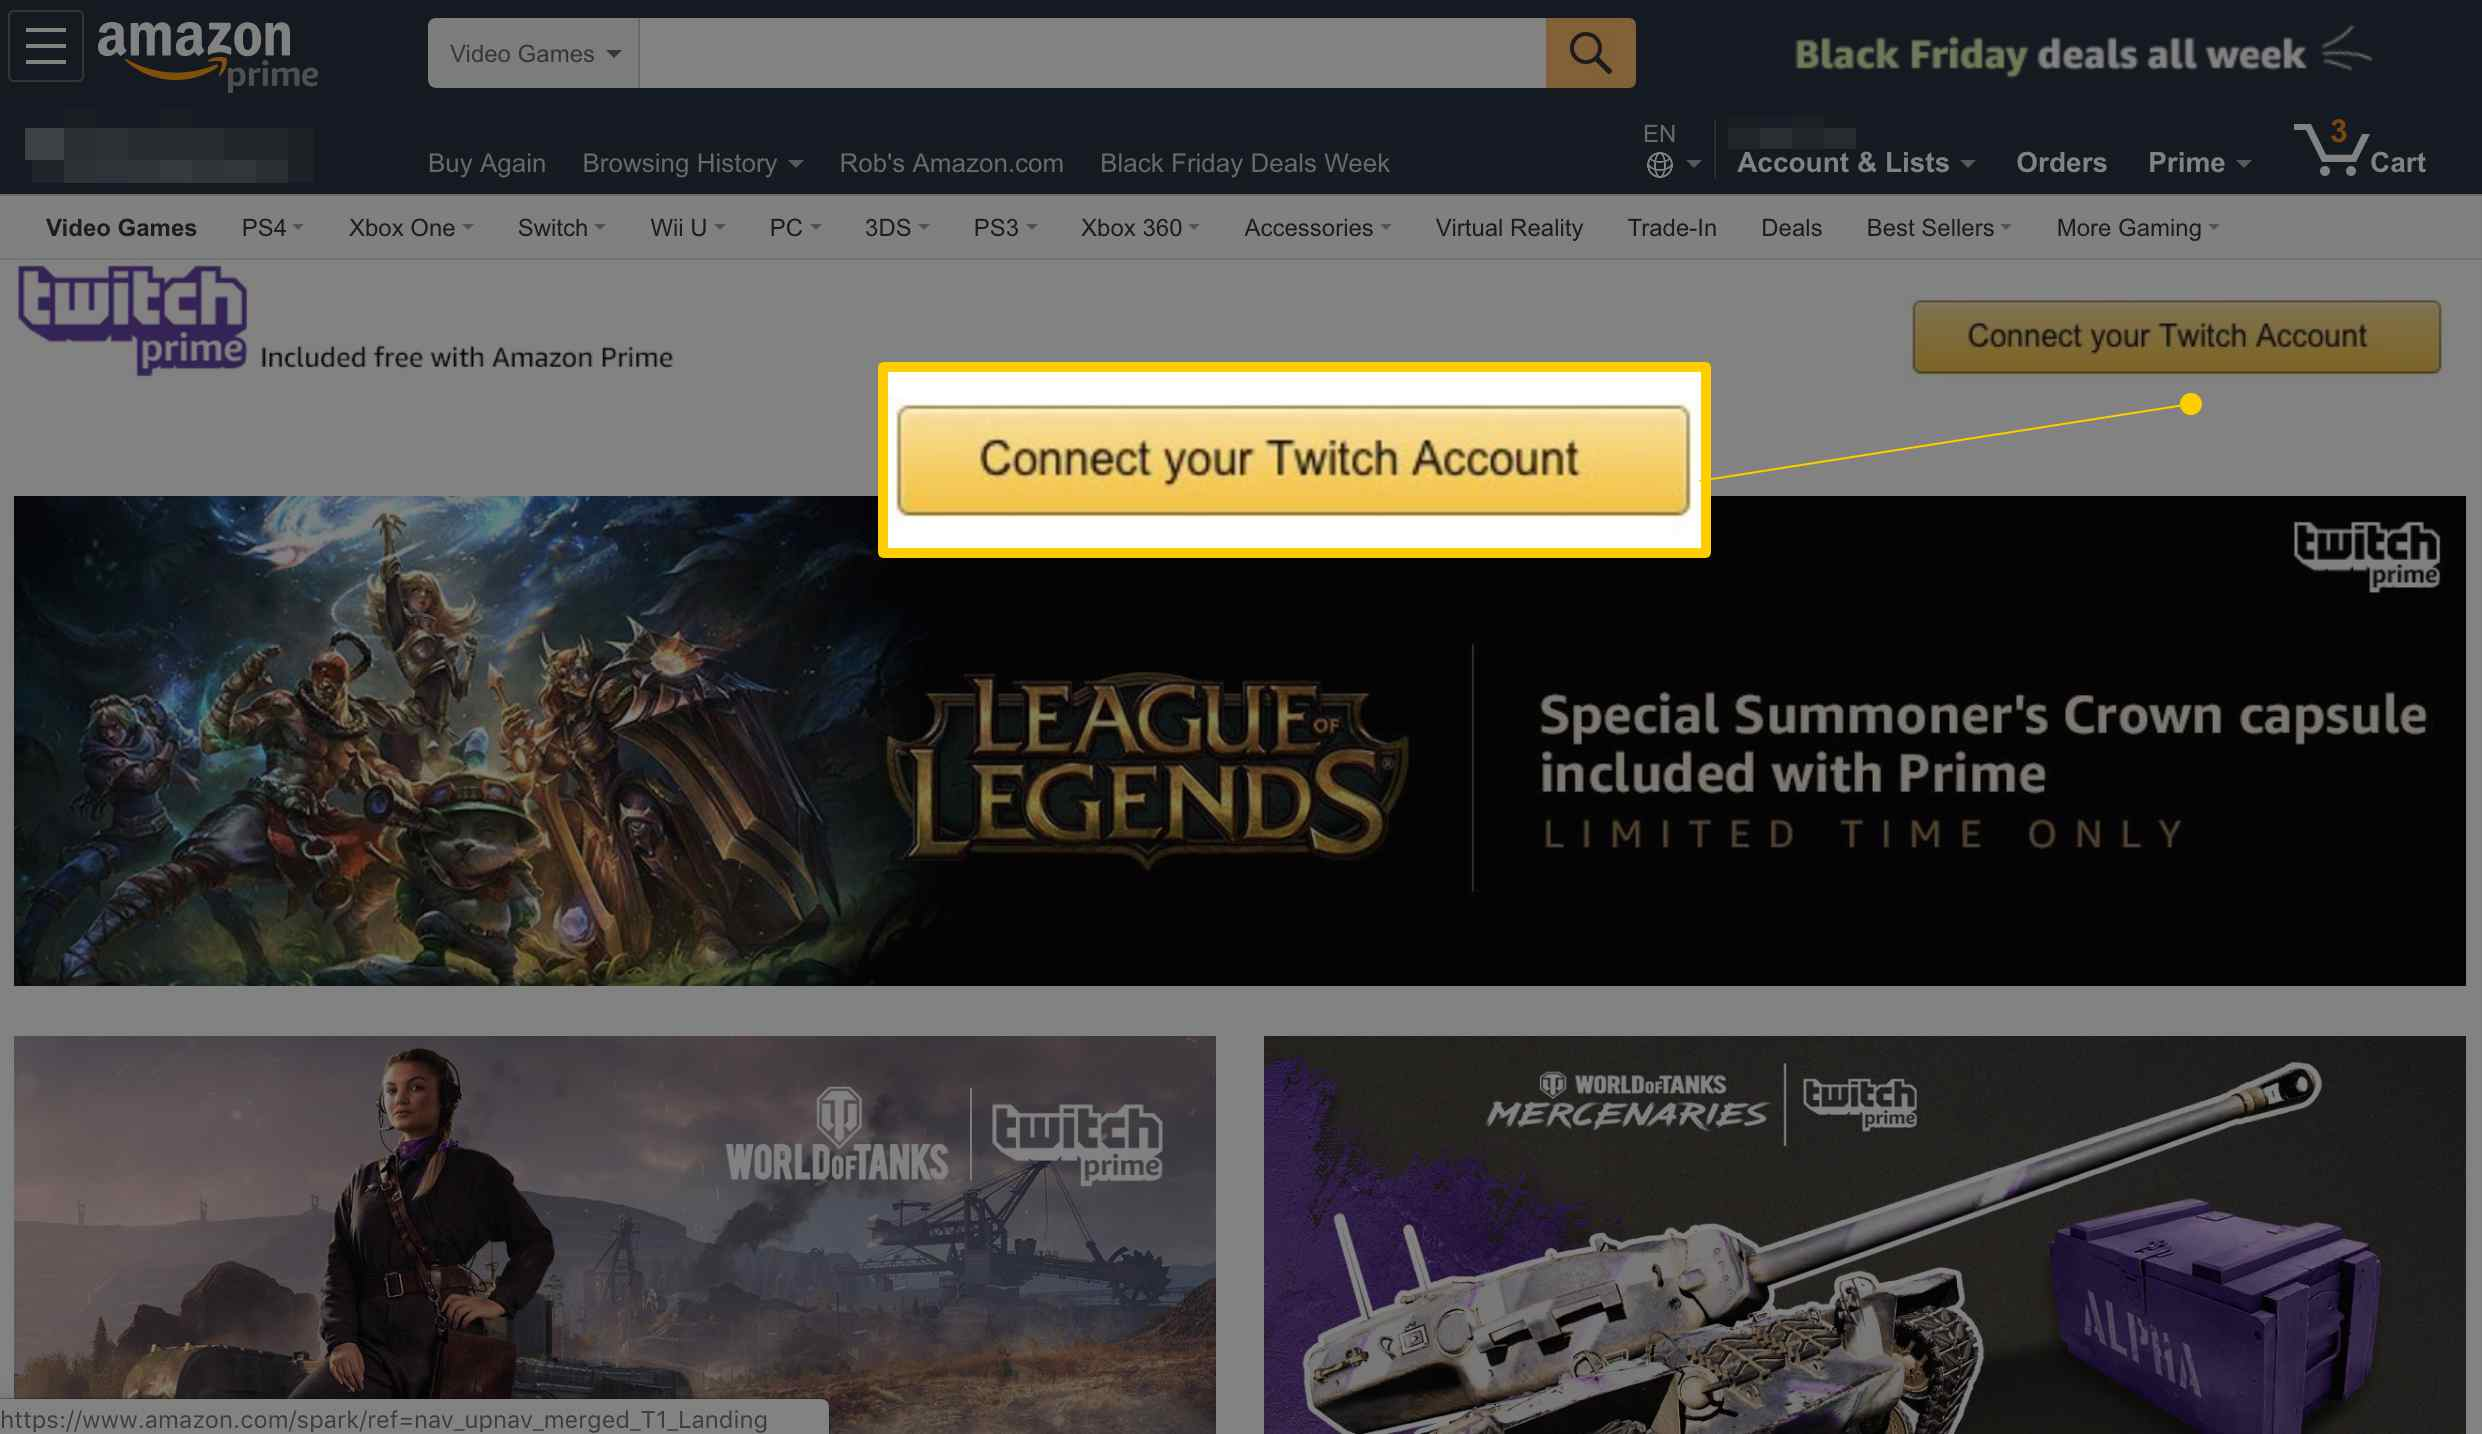 Connect your Twitch Account button on Amazon